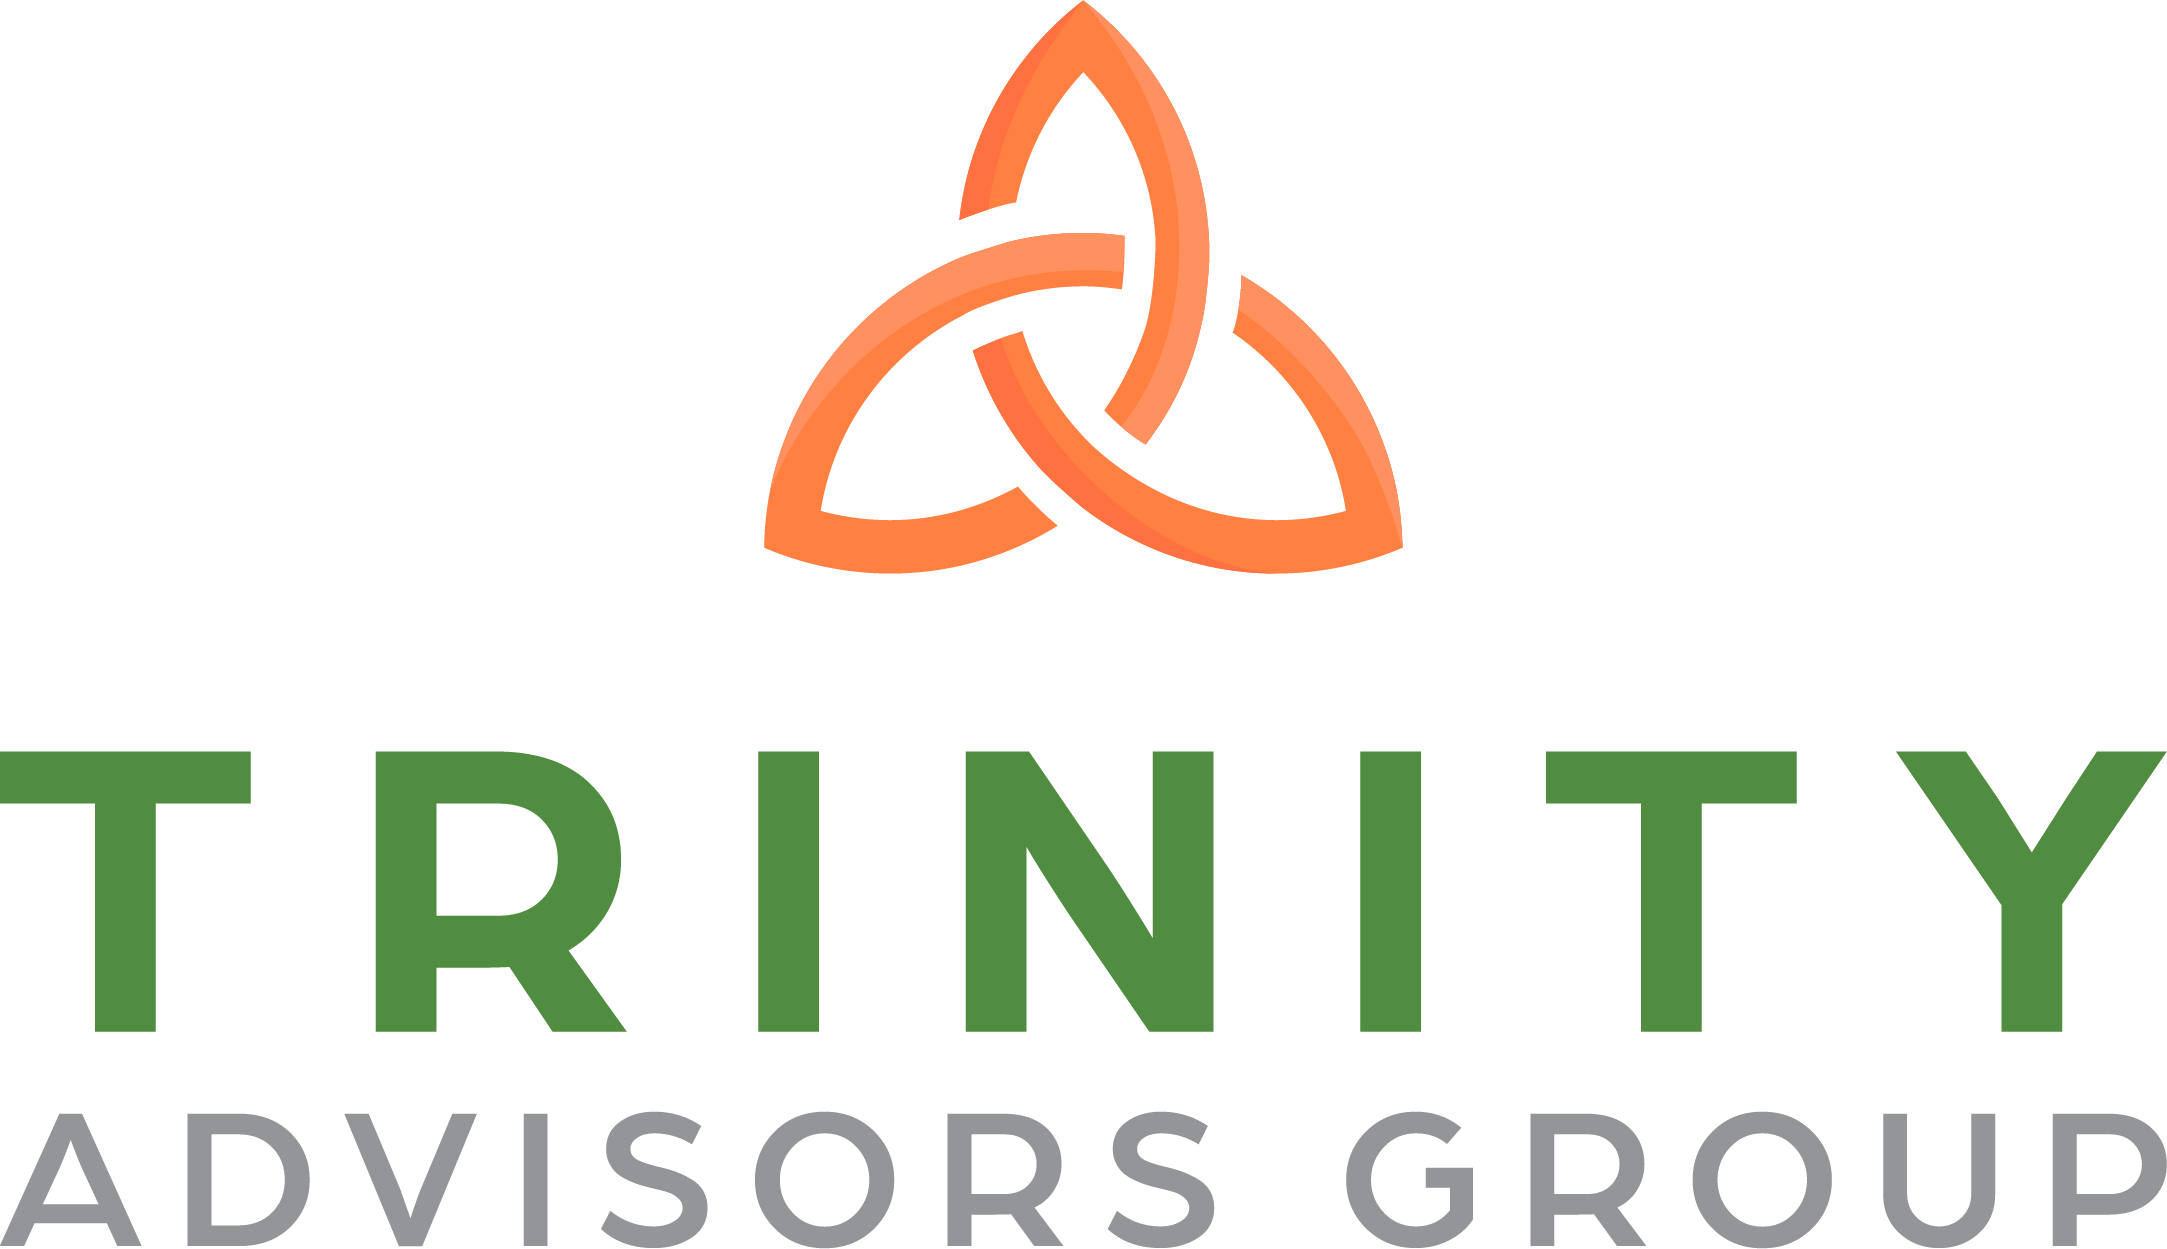 Trinity Advisors Group